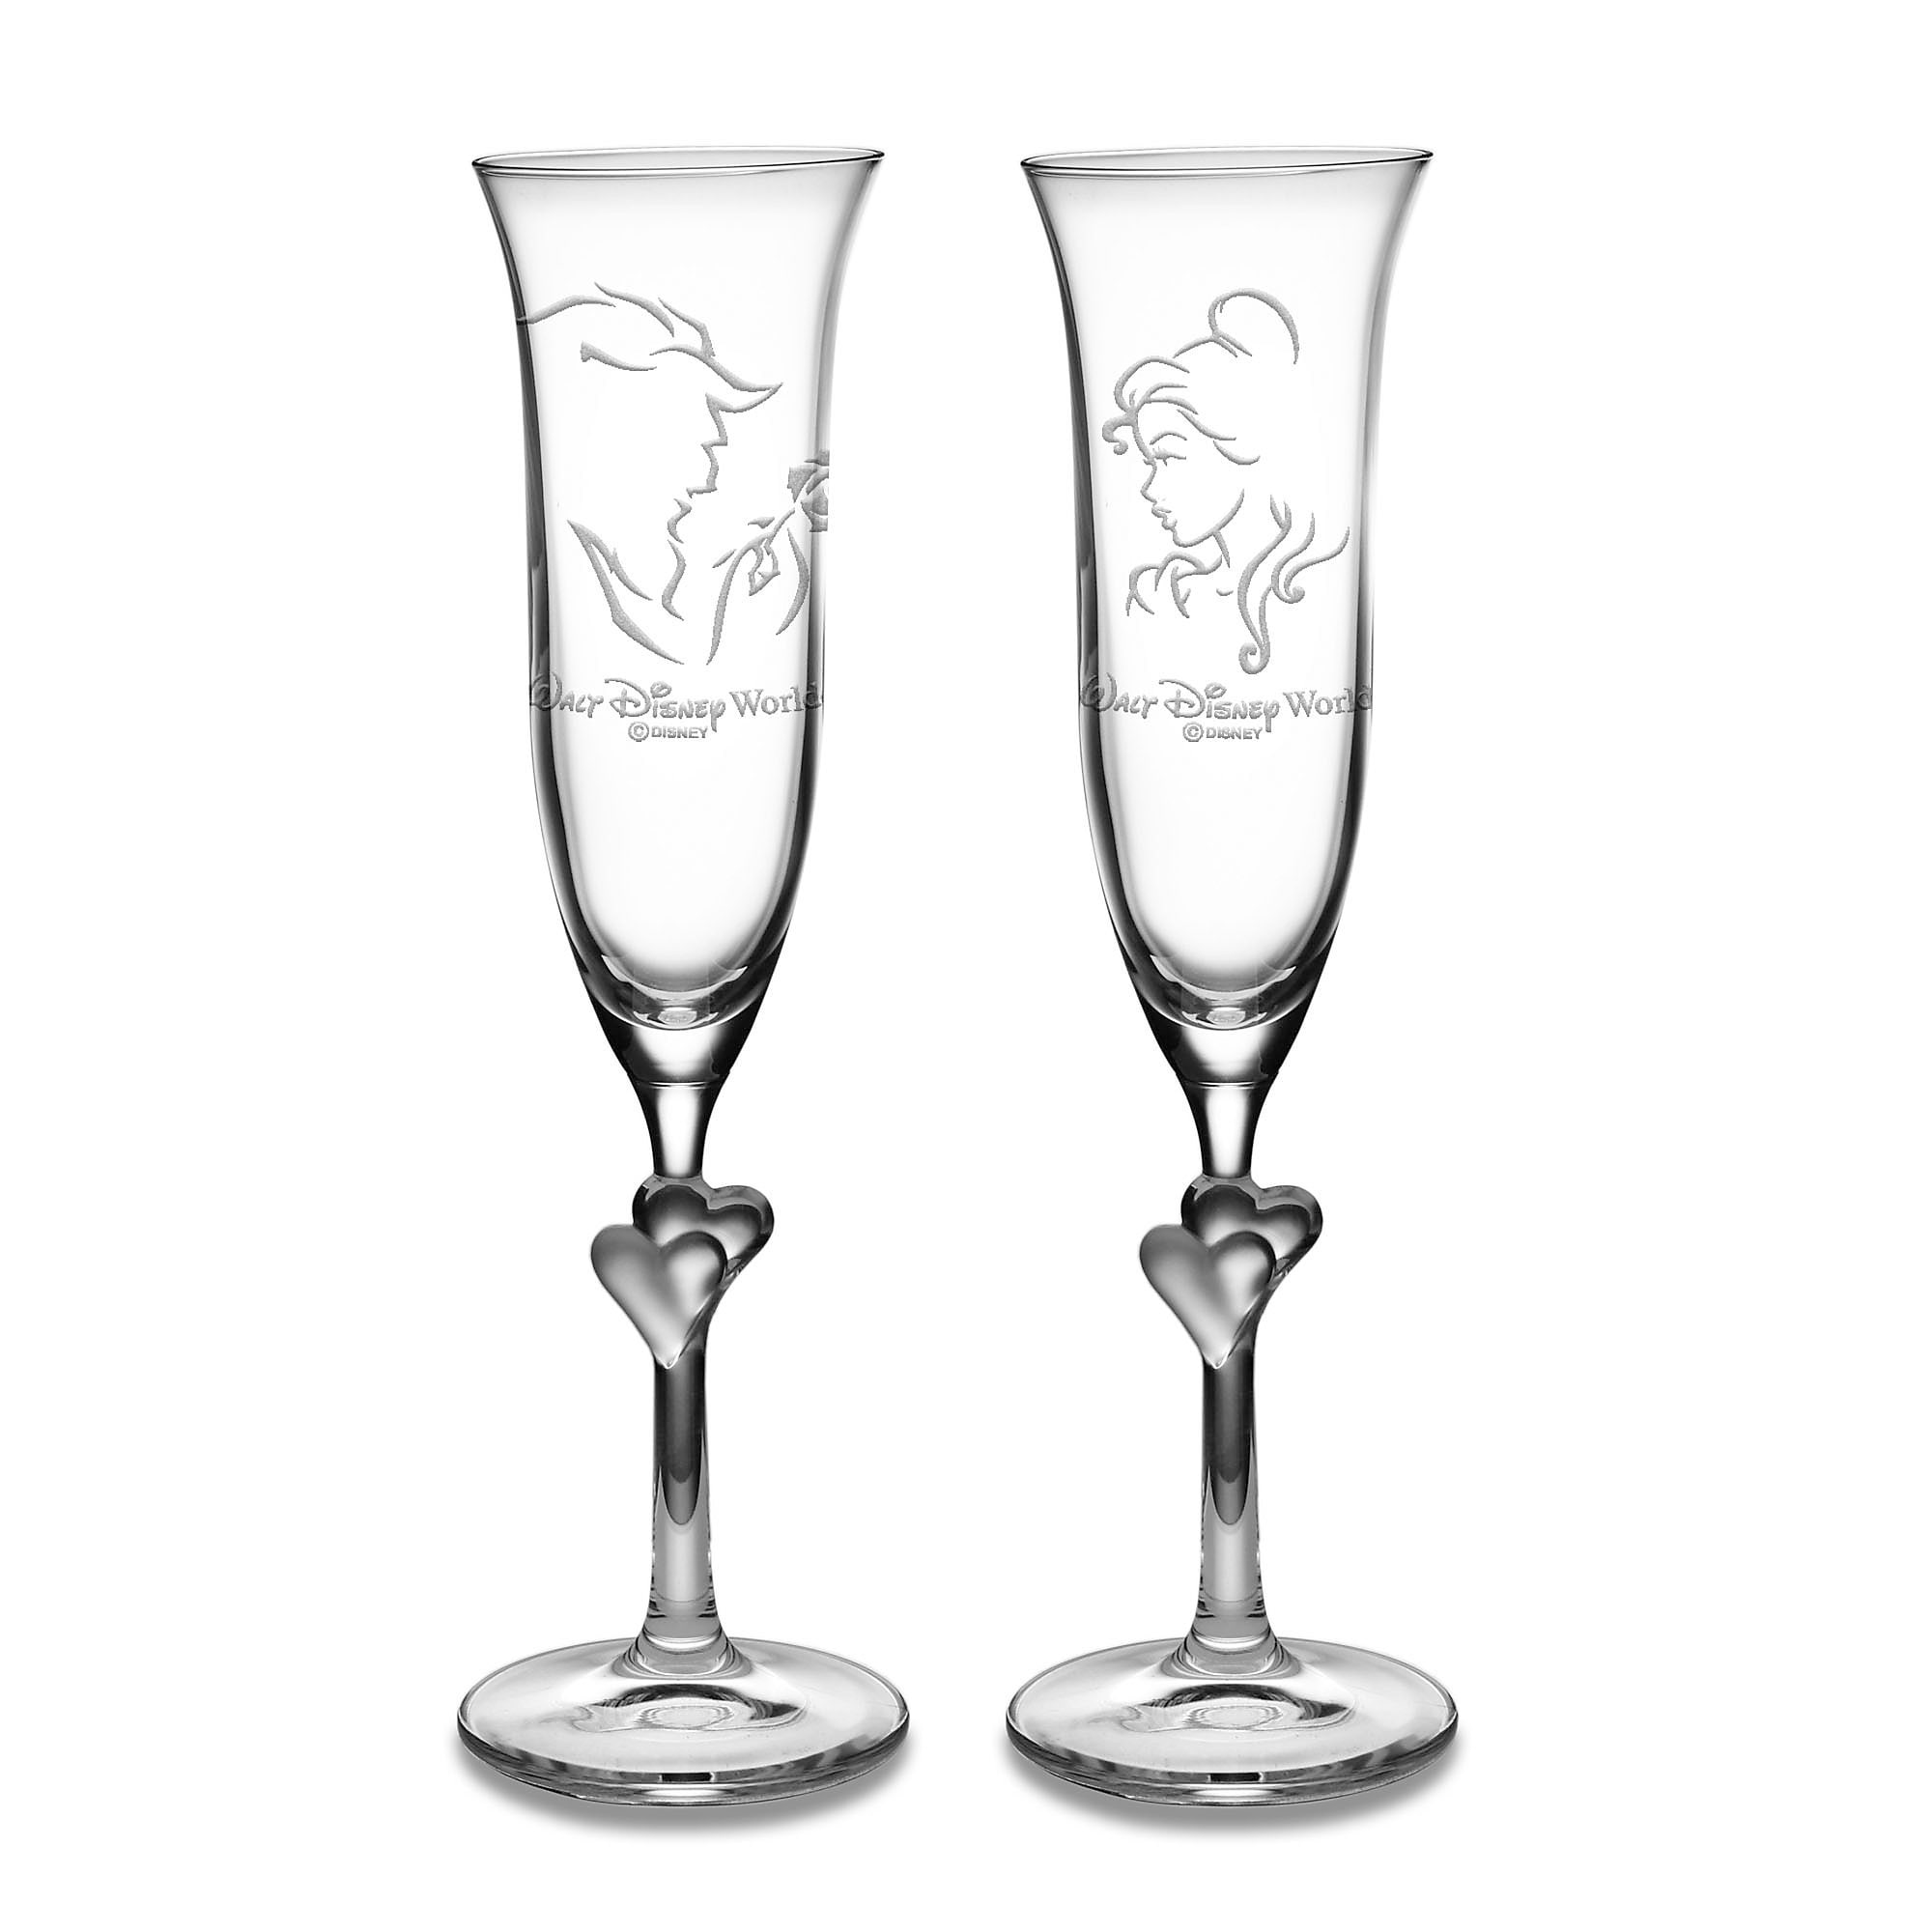 cb316a2cef Beauty and the Beast Glass Flute Set by Arribas - Personalizable ...